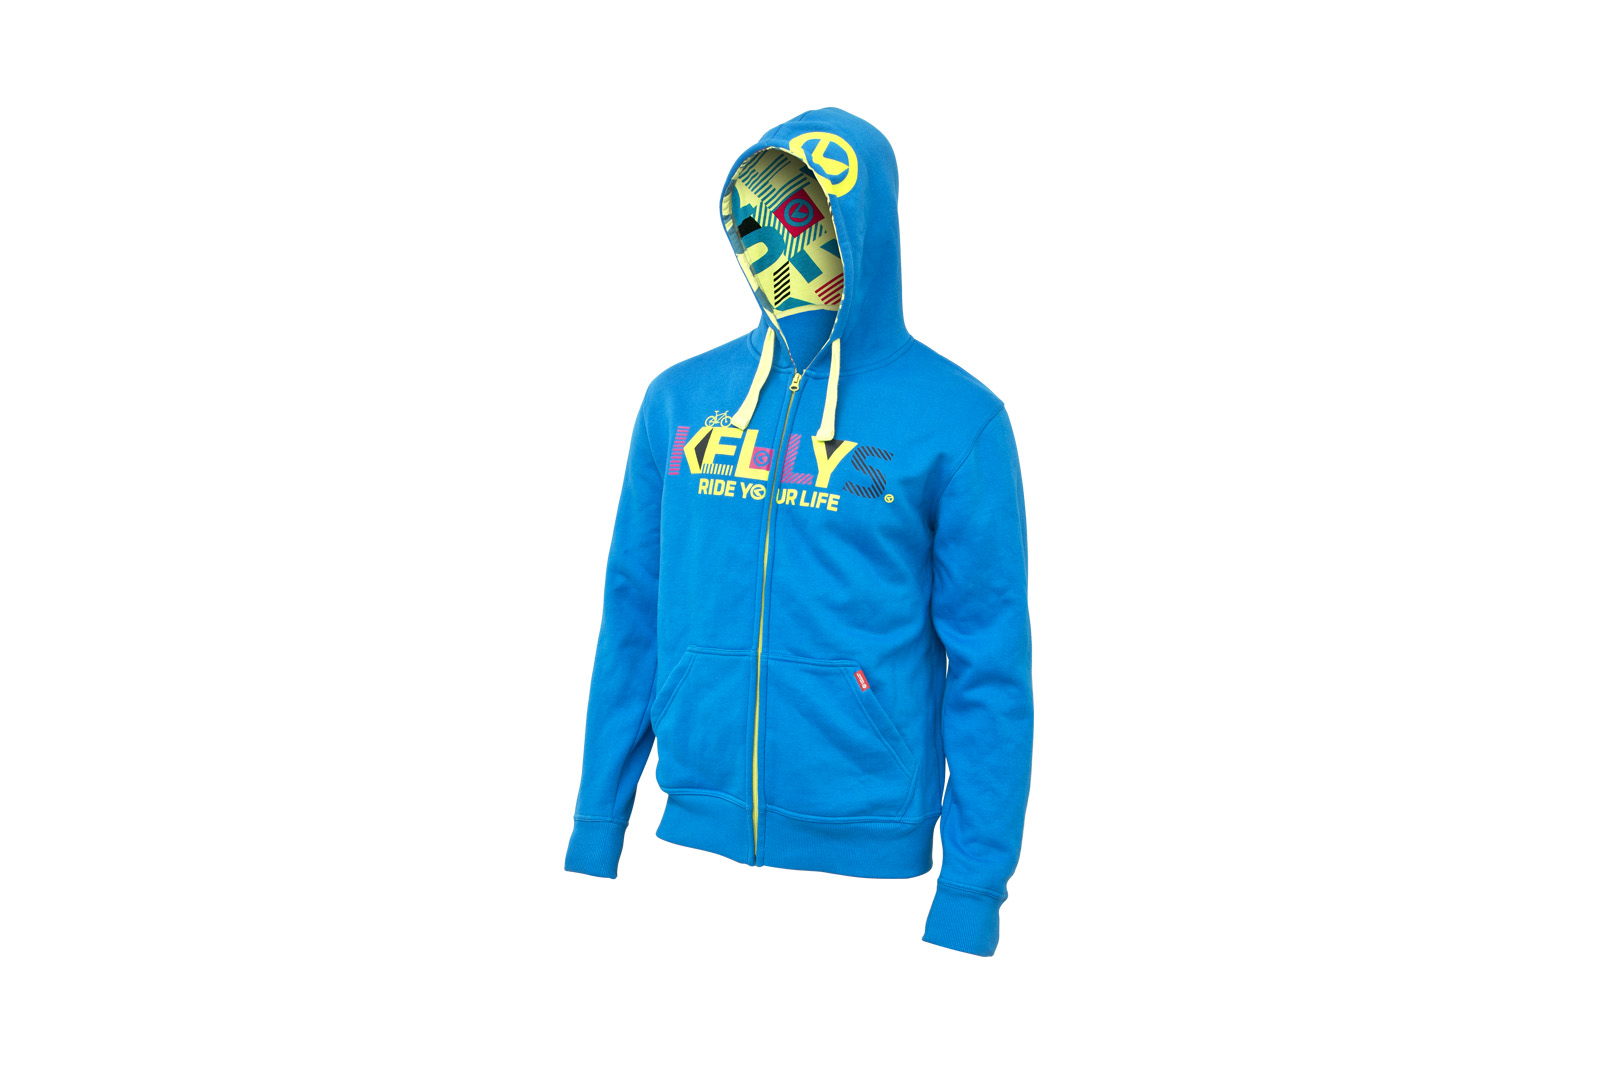 Sweatjacke KELLYS MEN´S TYPO BLUE - XL - Sweatjacke KELLYS MEN´S TYPO BLUE - XL